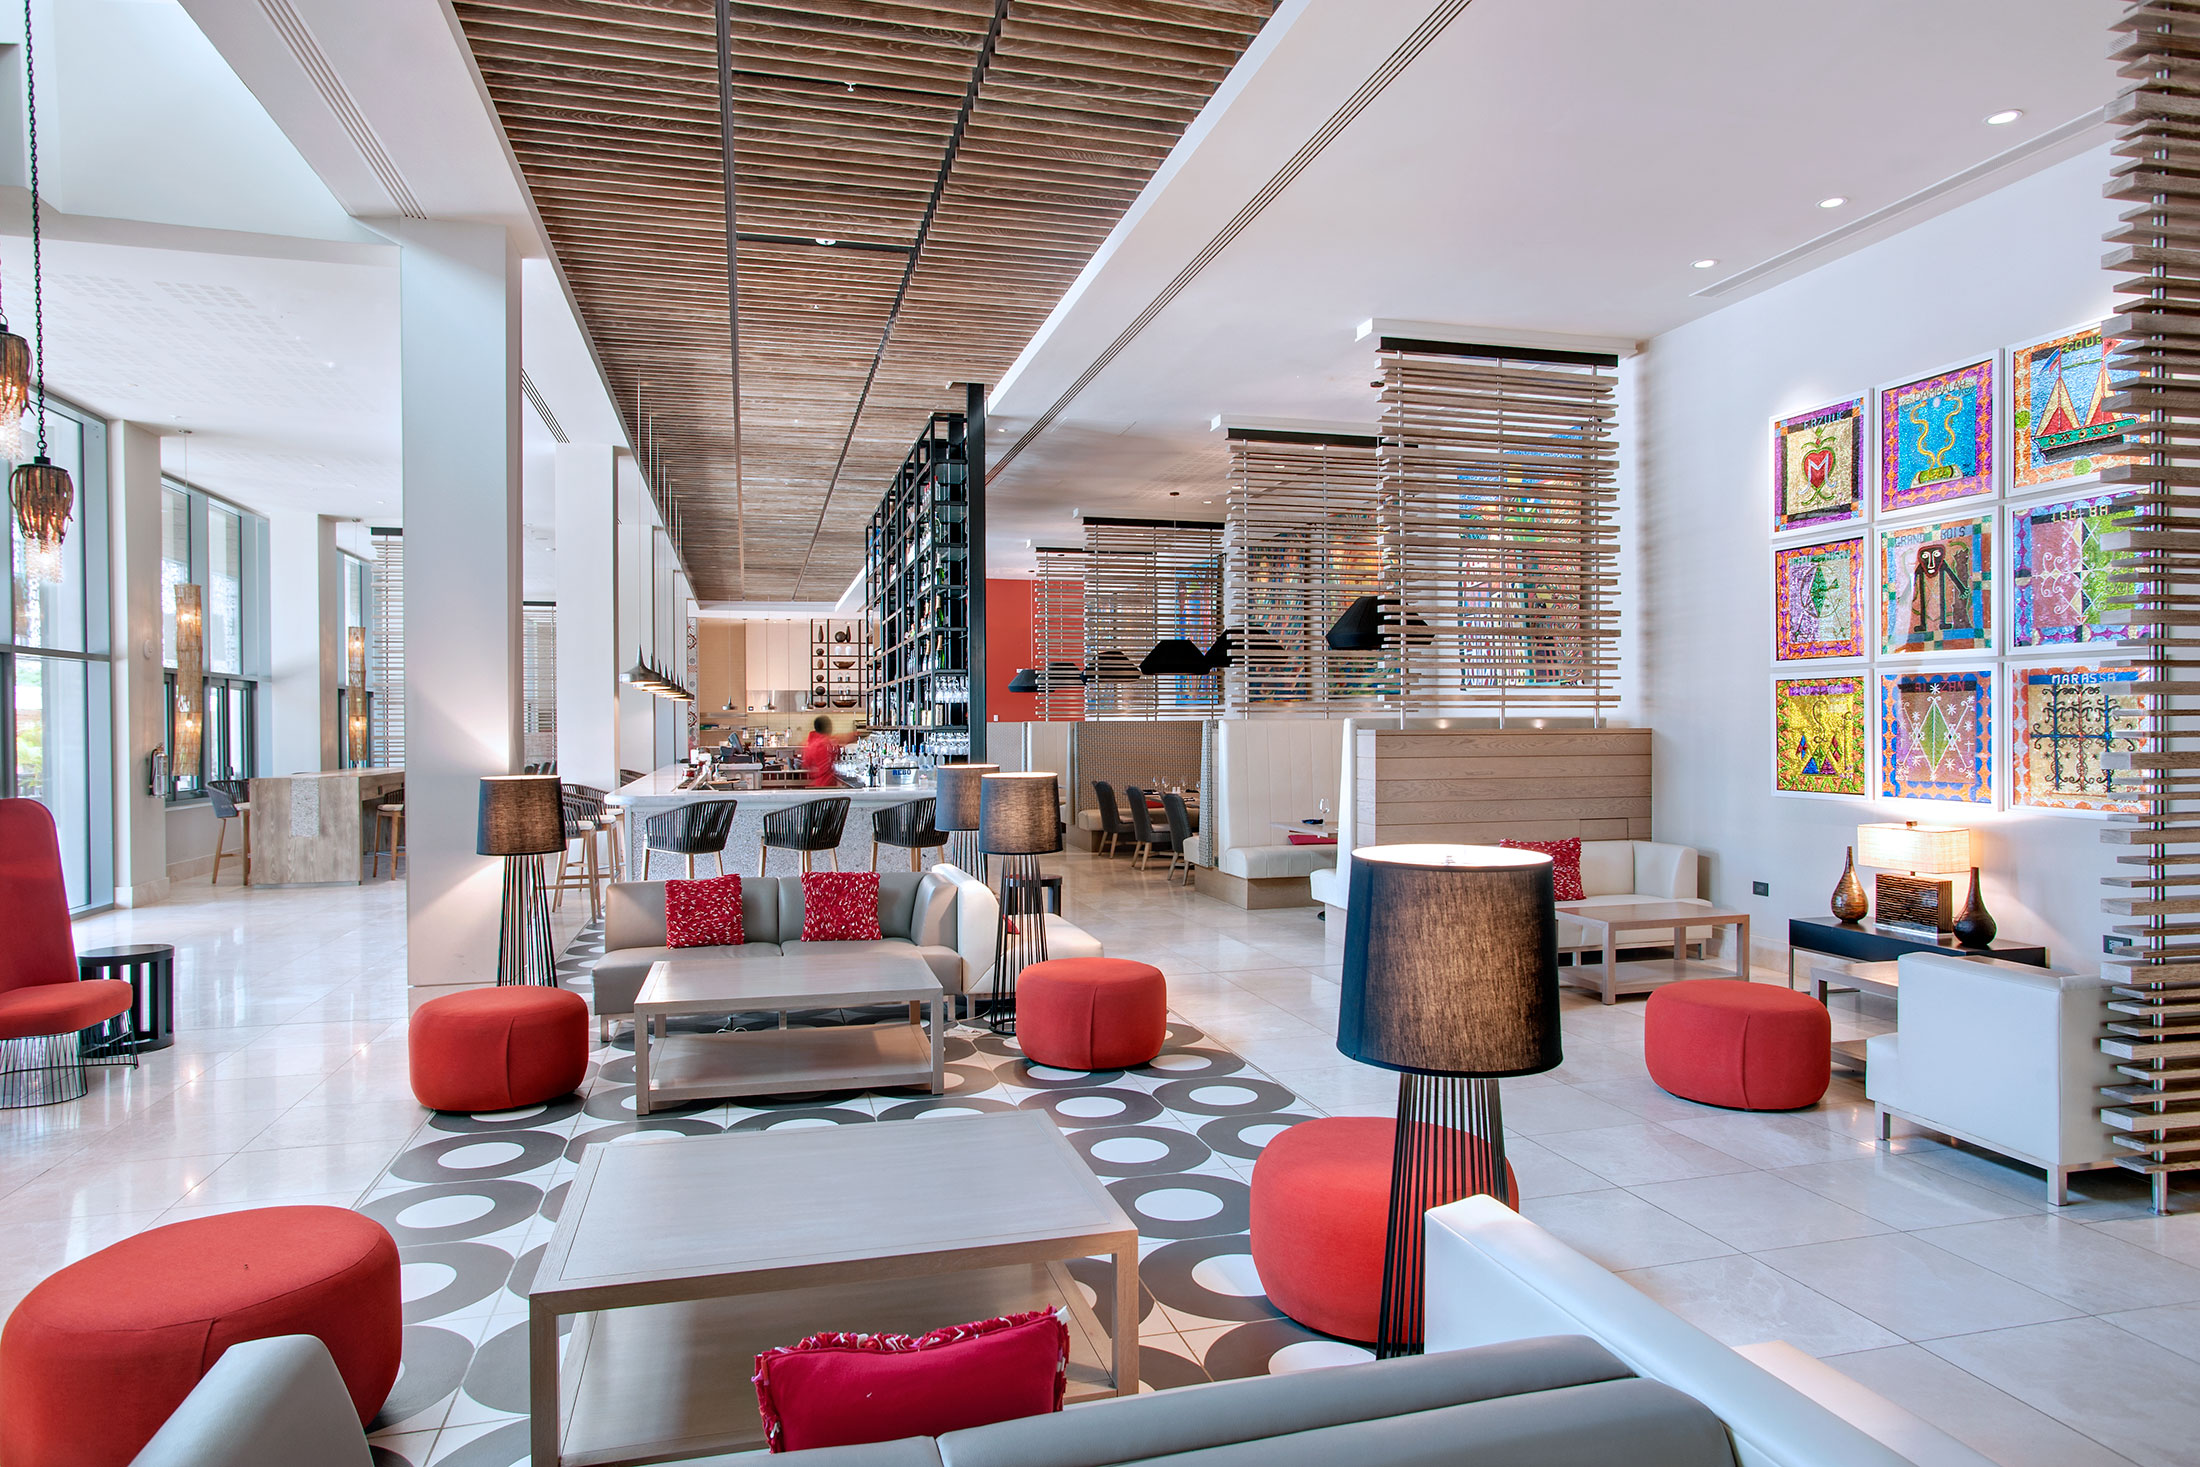 The lobby at the Marriott Port-au-Prince Hotel. (Photo: Courtesy Marriott)